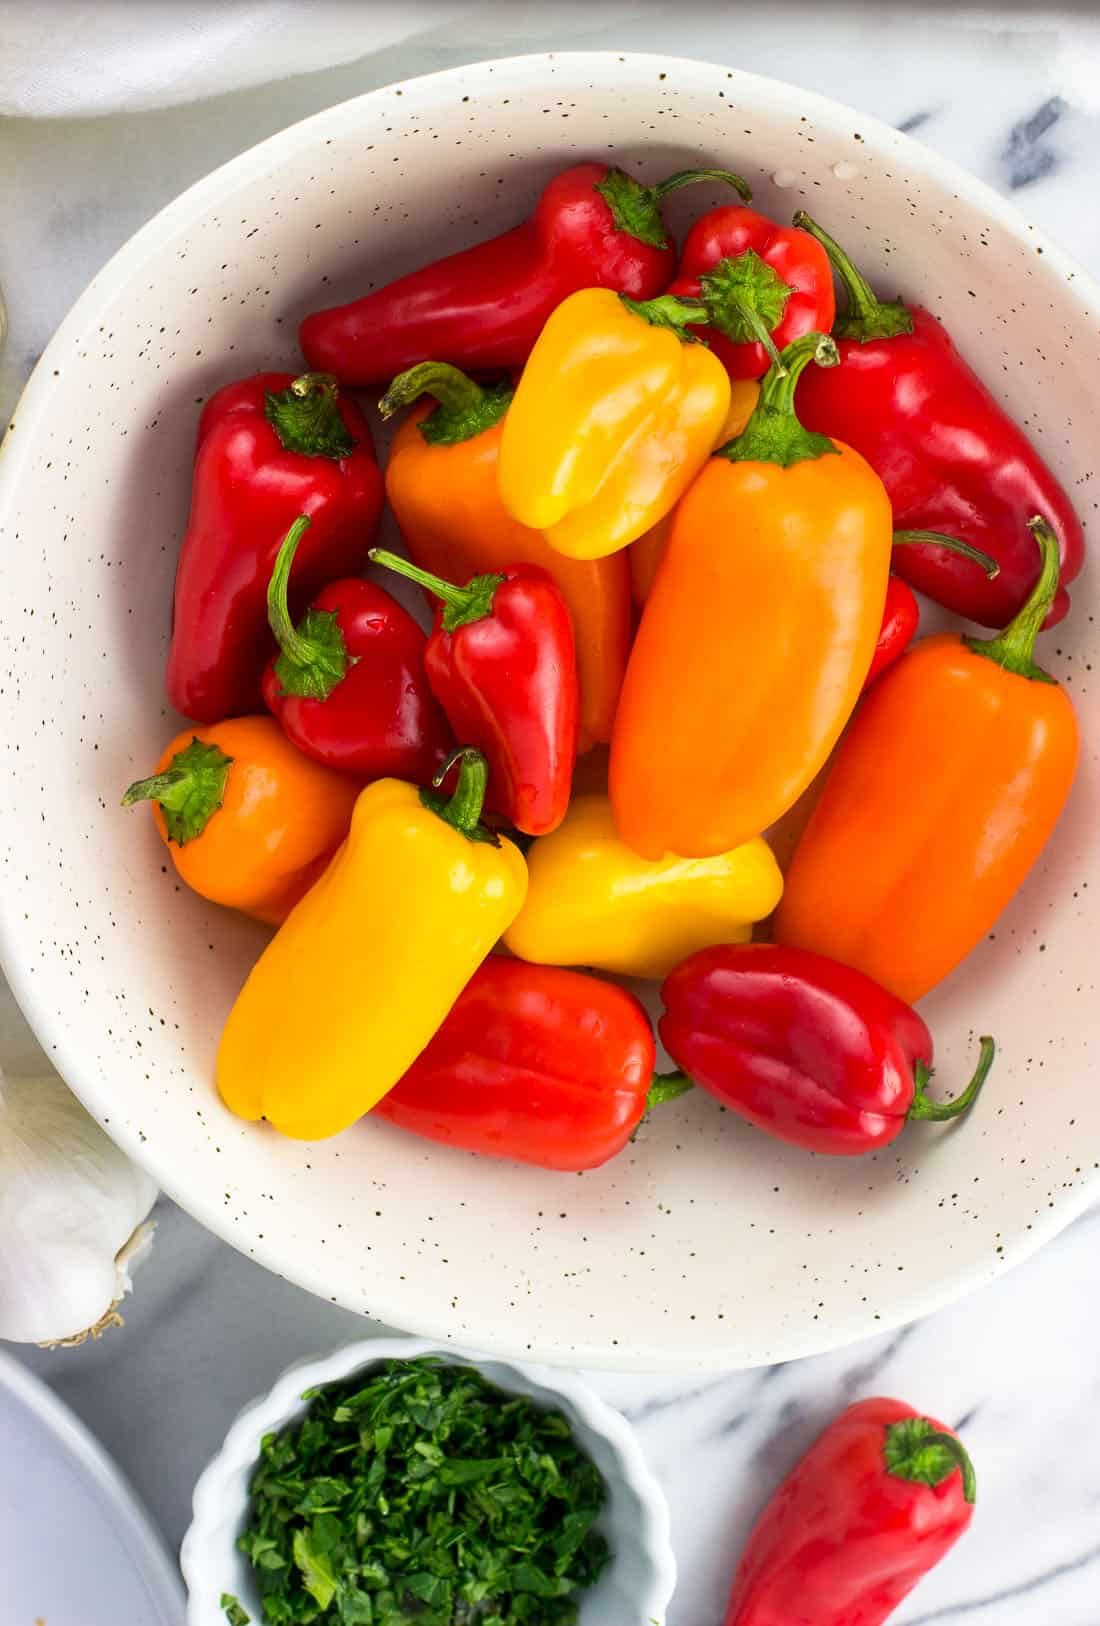 A close-up picture of a bowl of mini sweet peppers